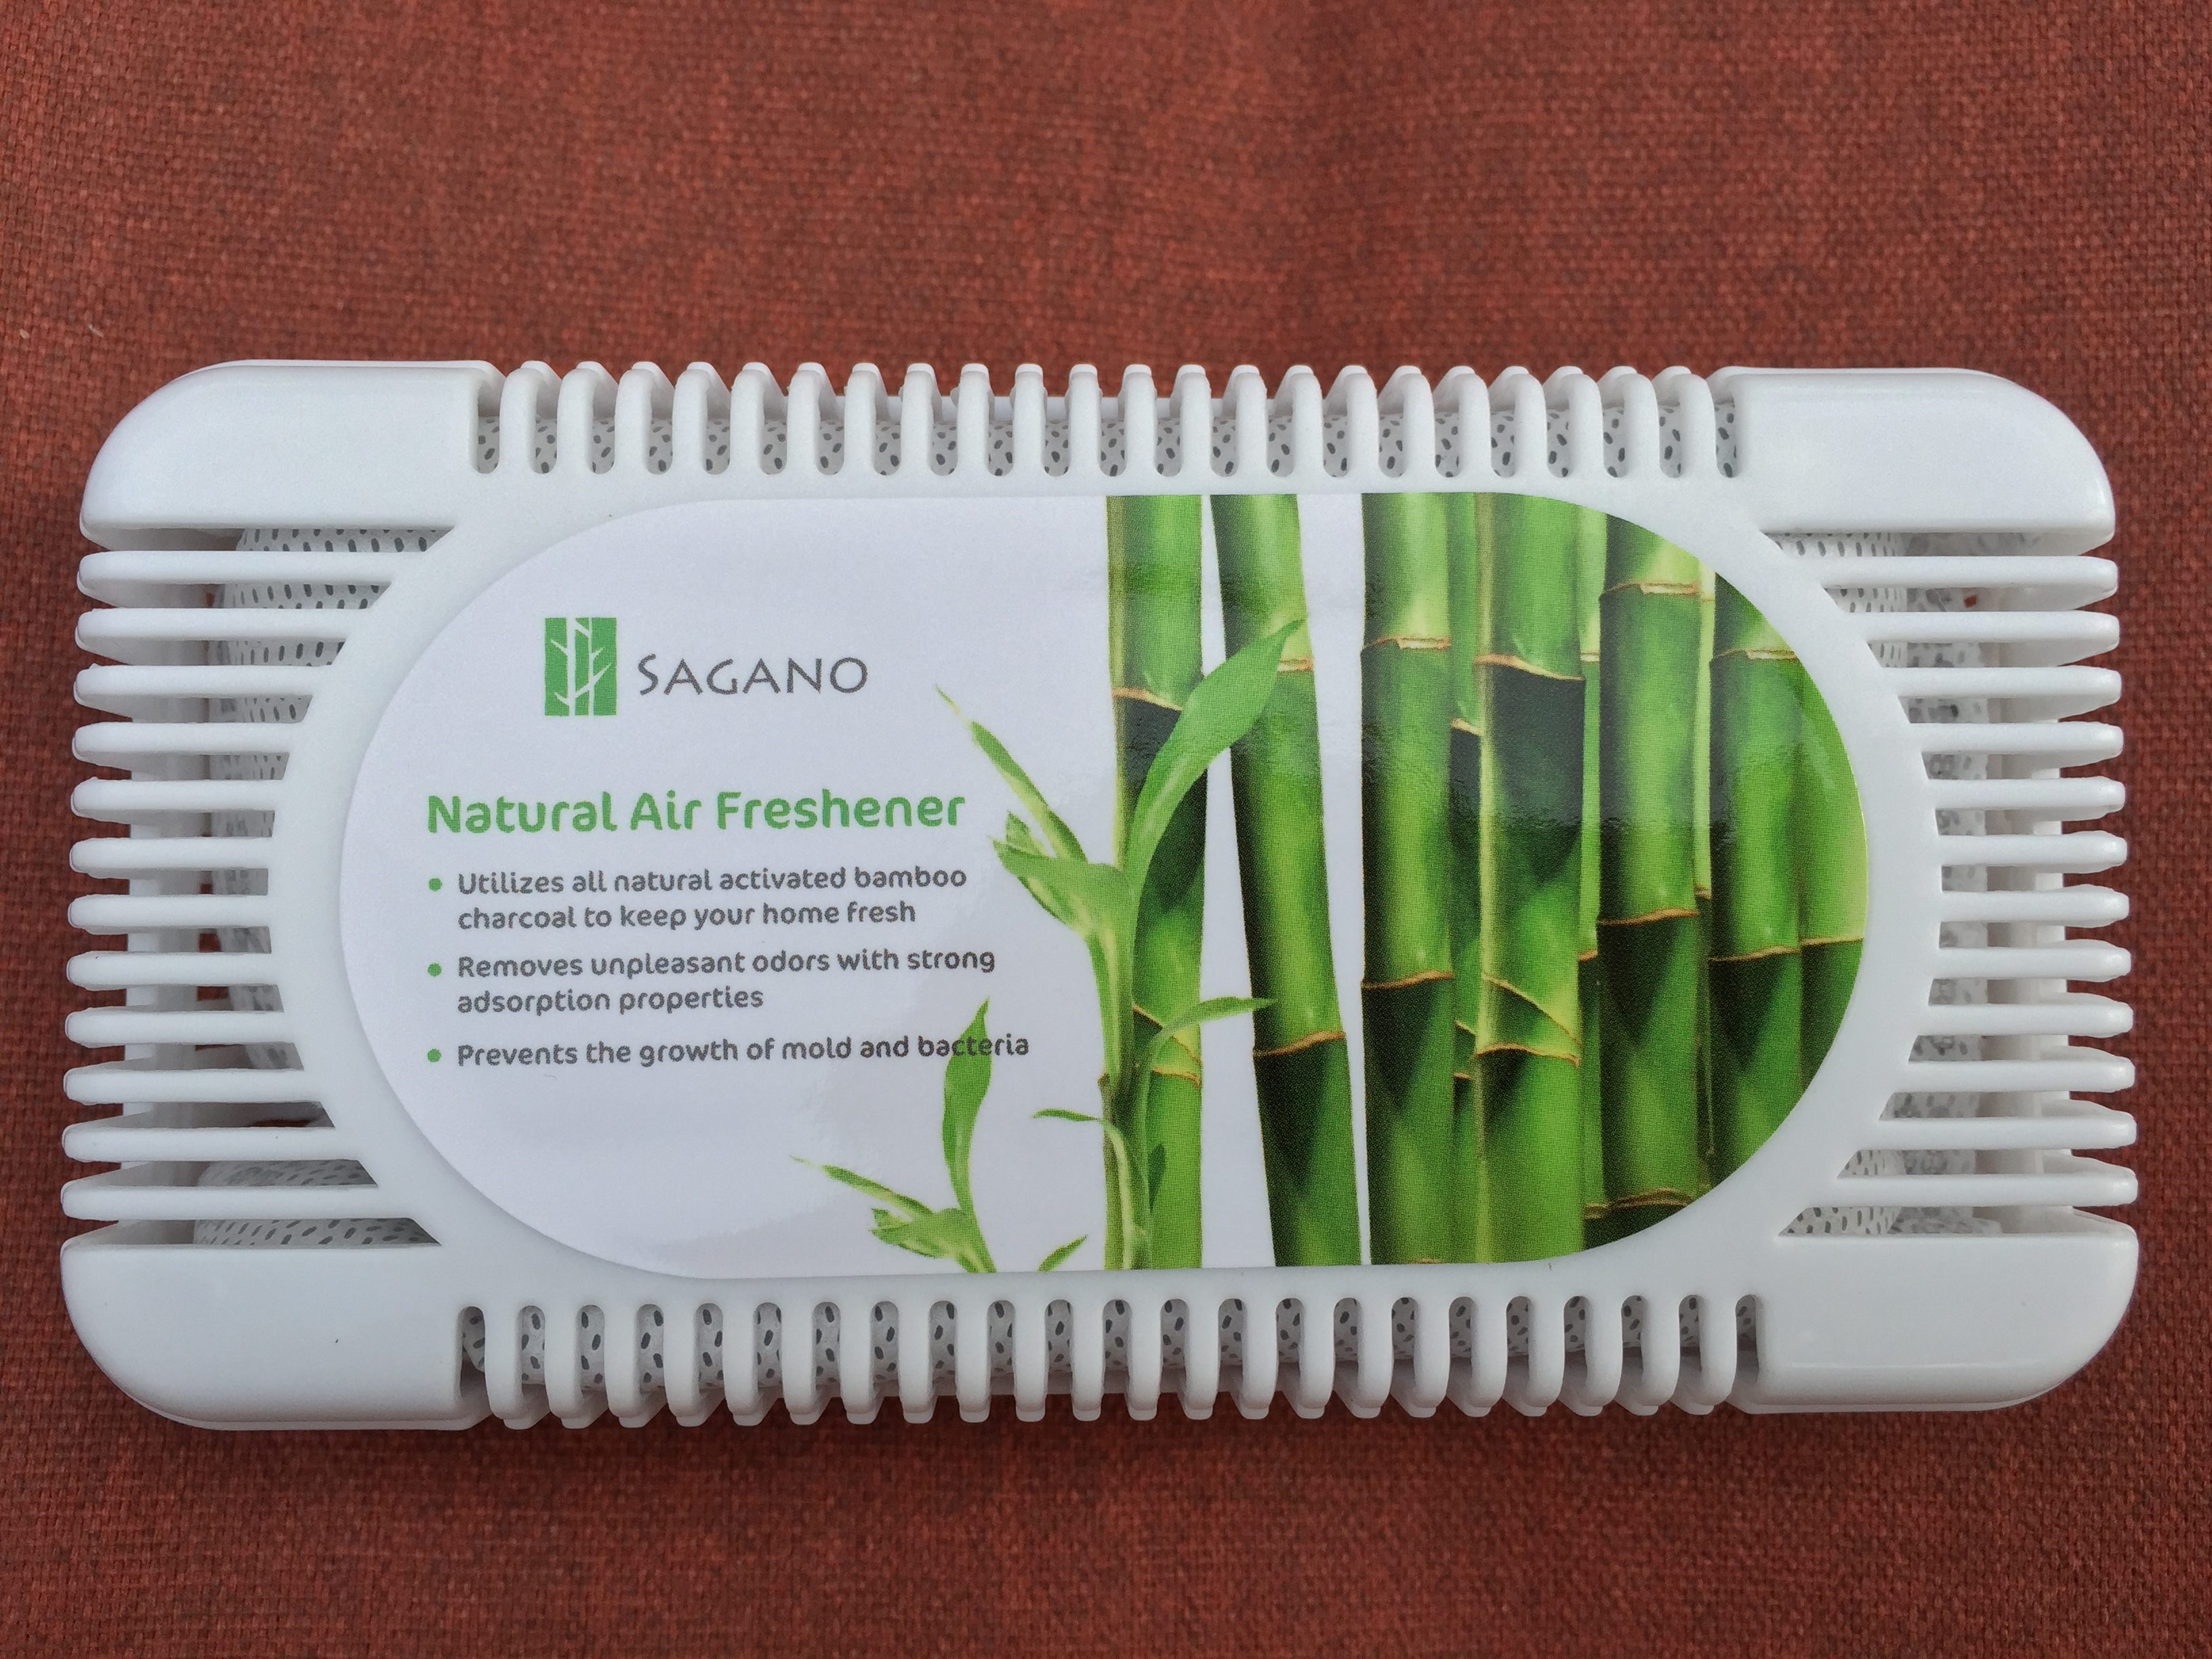 Natural and Powerful Refrigerator Deodorizer #saganofresh